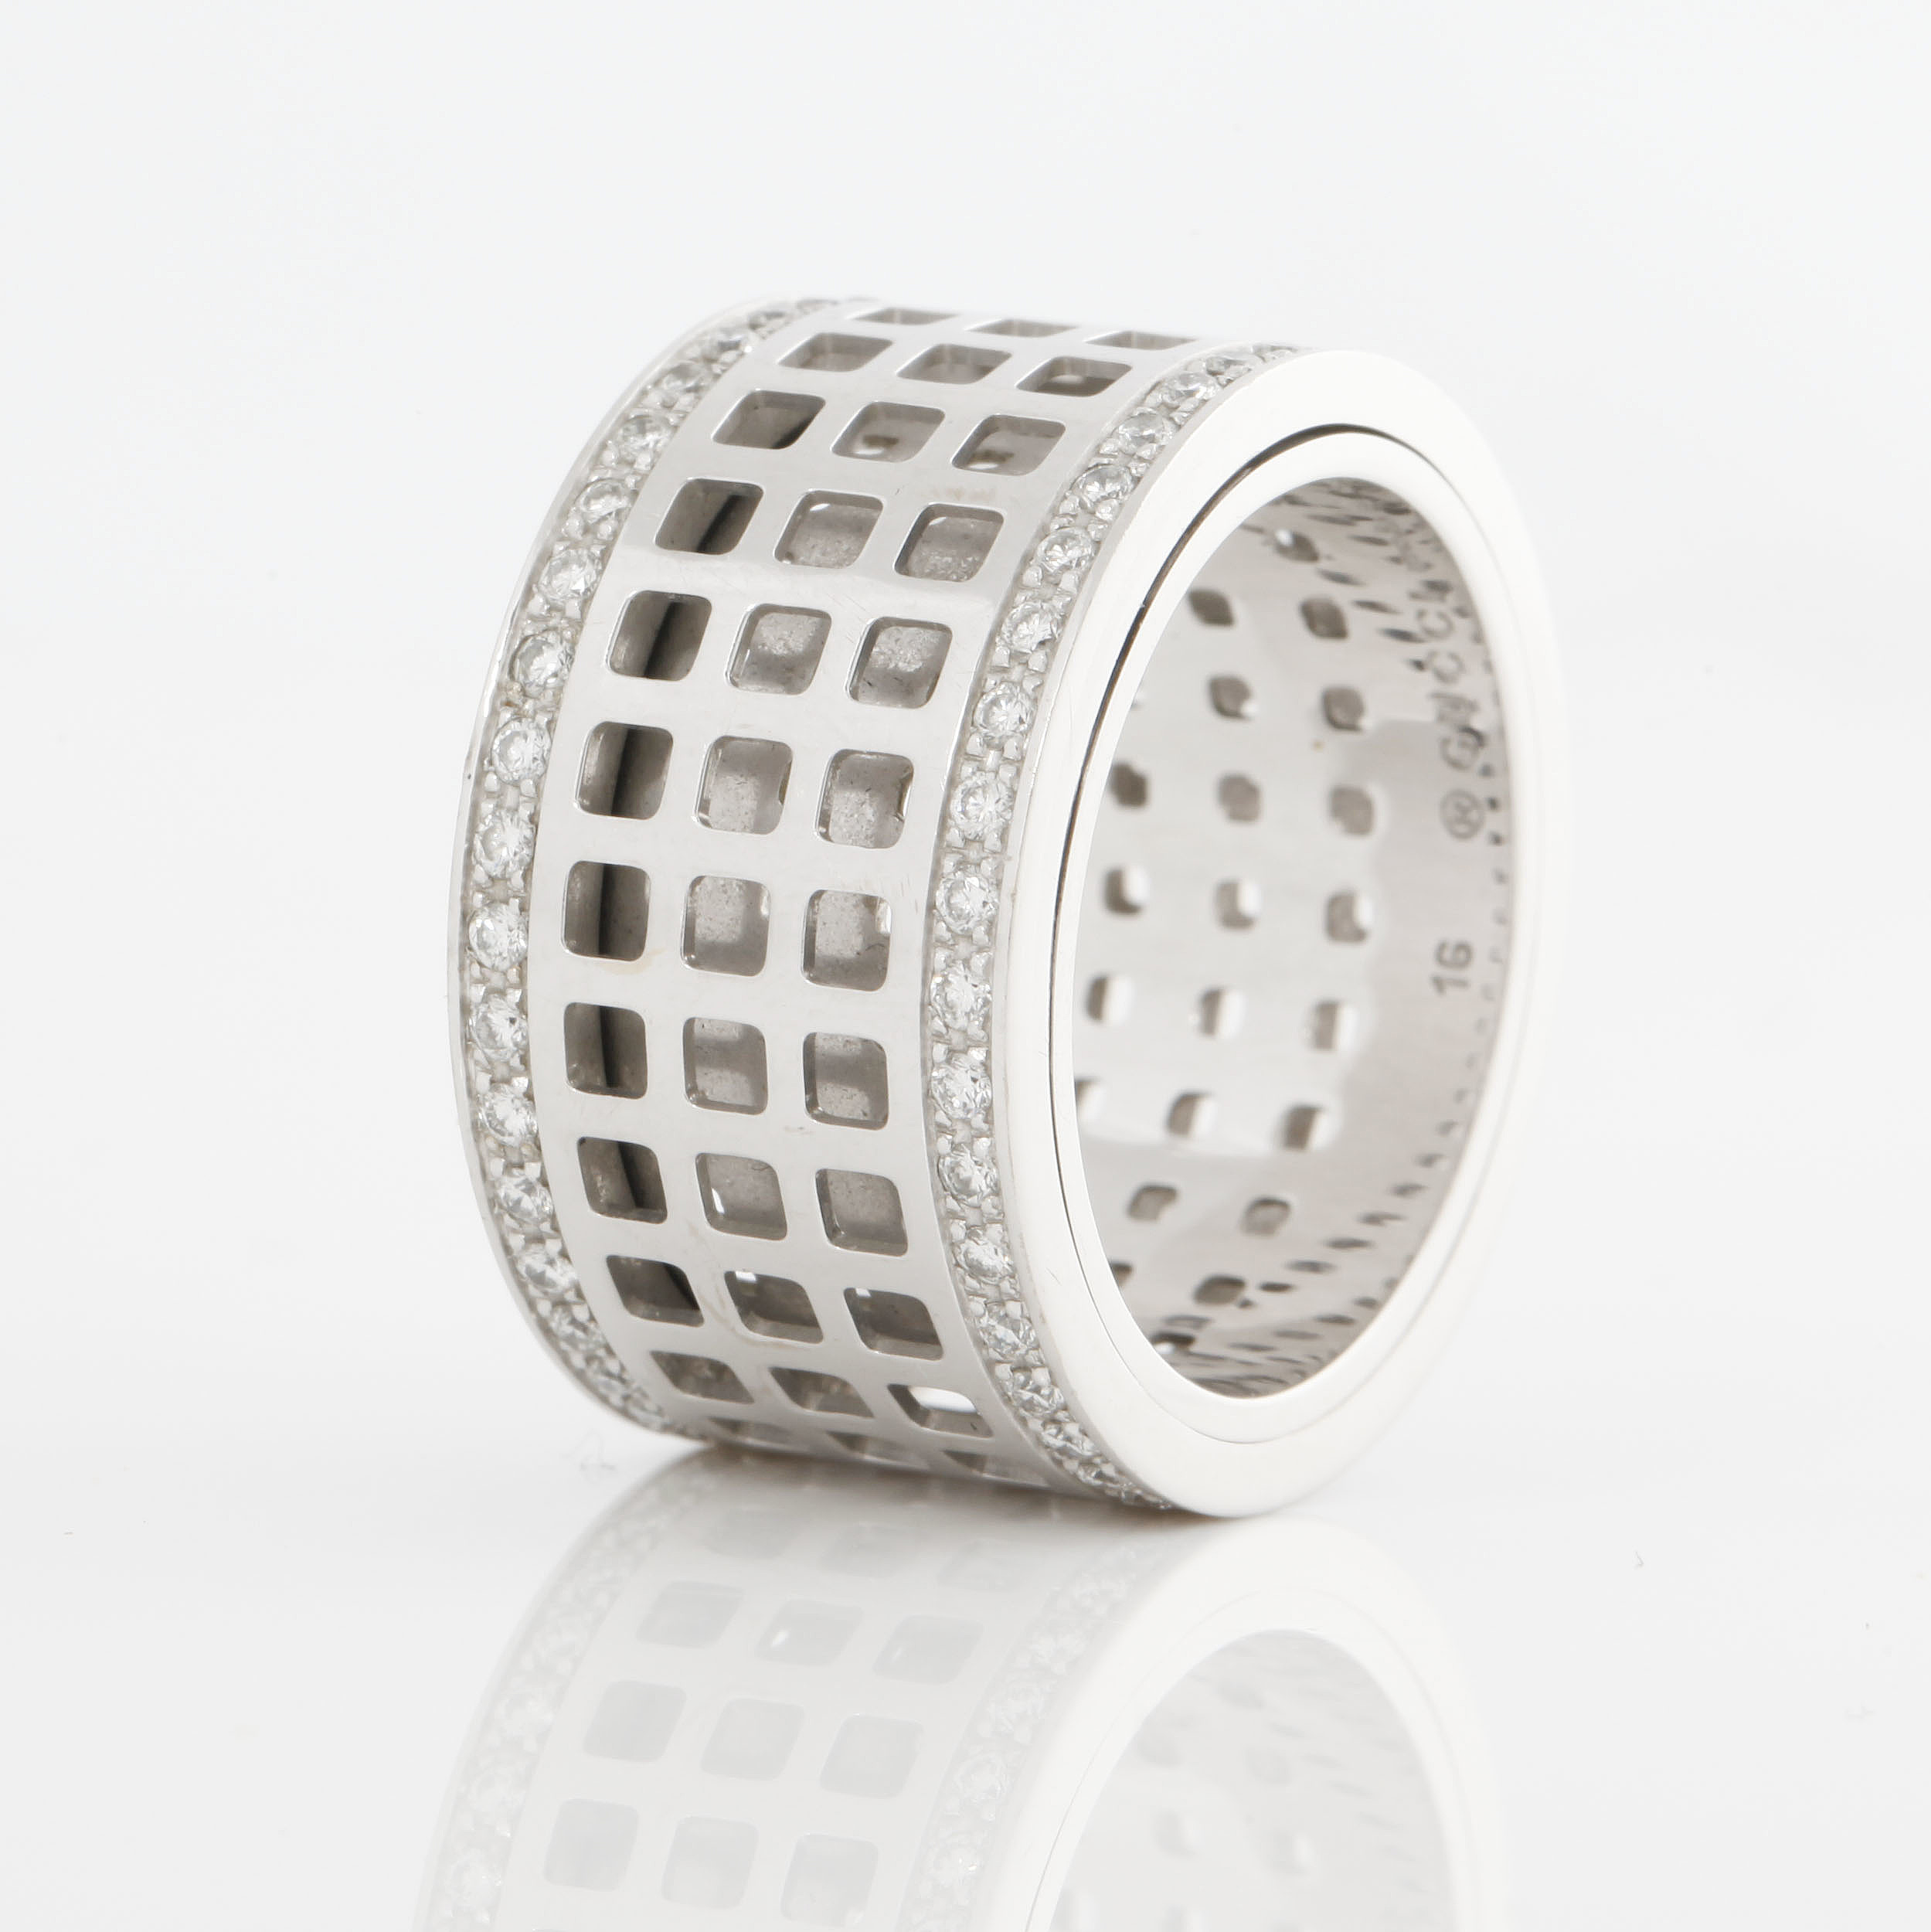 aaa033b12 A 'Spinning' eternity ring by Gucci set with round, brilliant-cut diamonds.  - Bukowskis